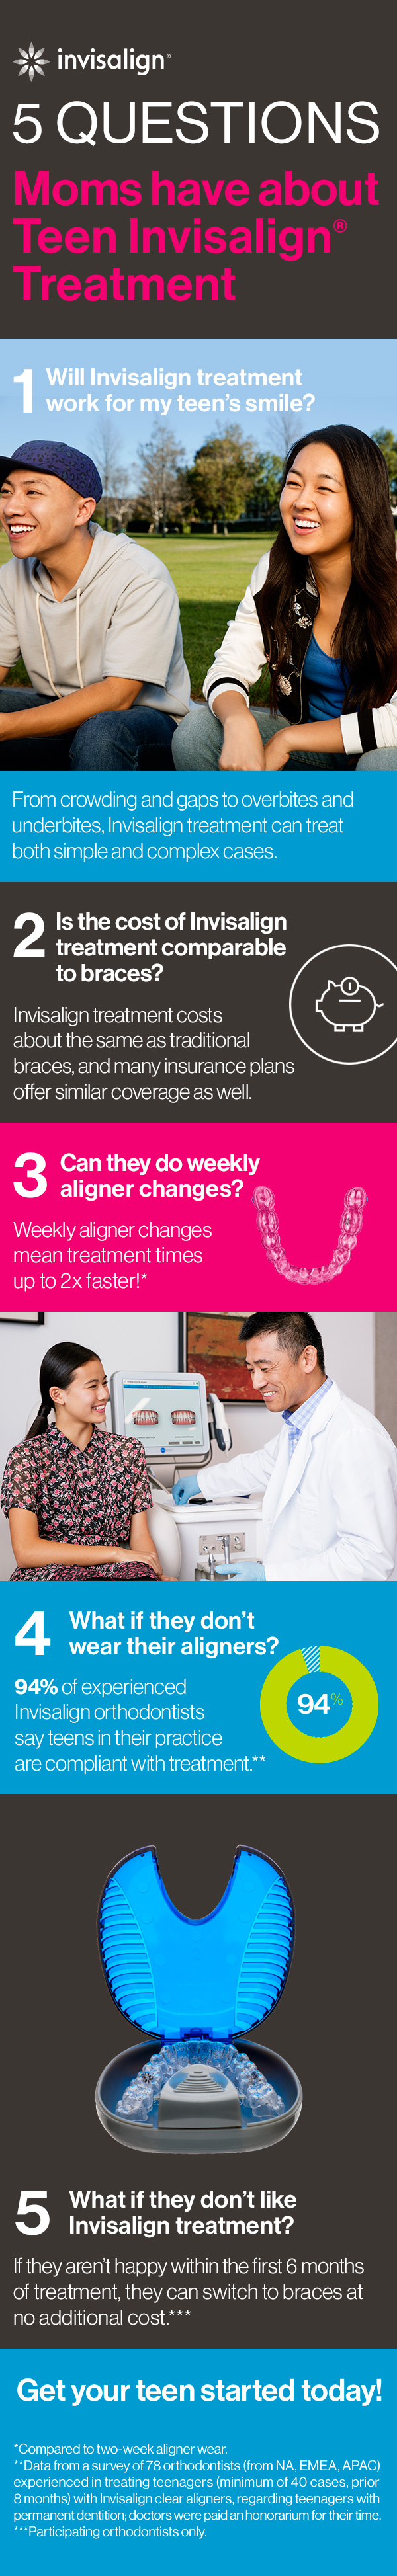 5 Questions About Invisalign Treatment - Answered!